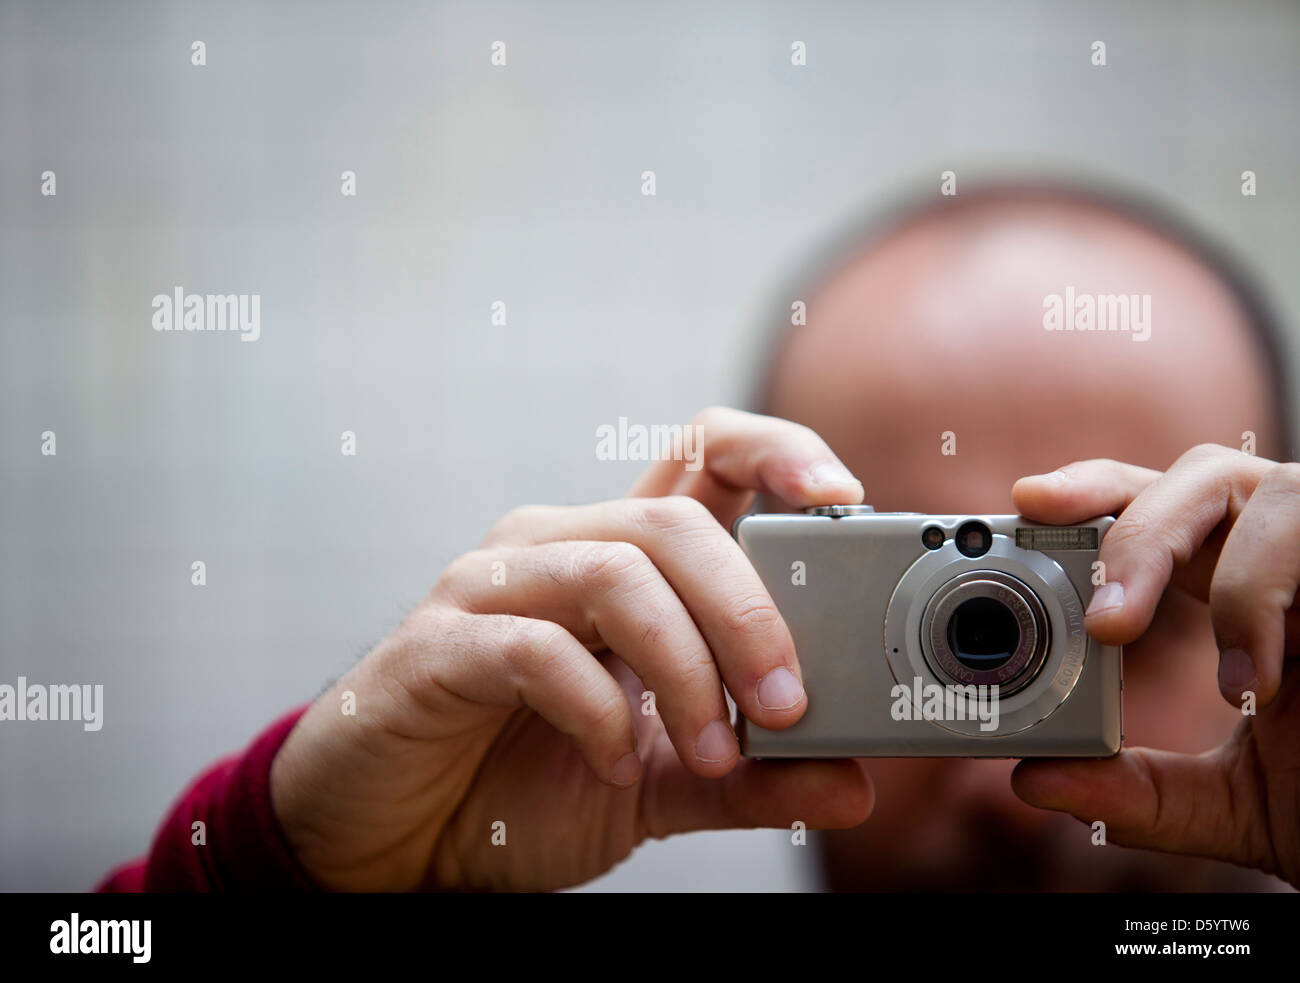 Man Taking a Photograph, Close-up View Stock Foto